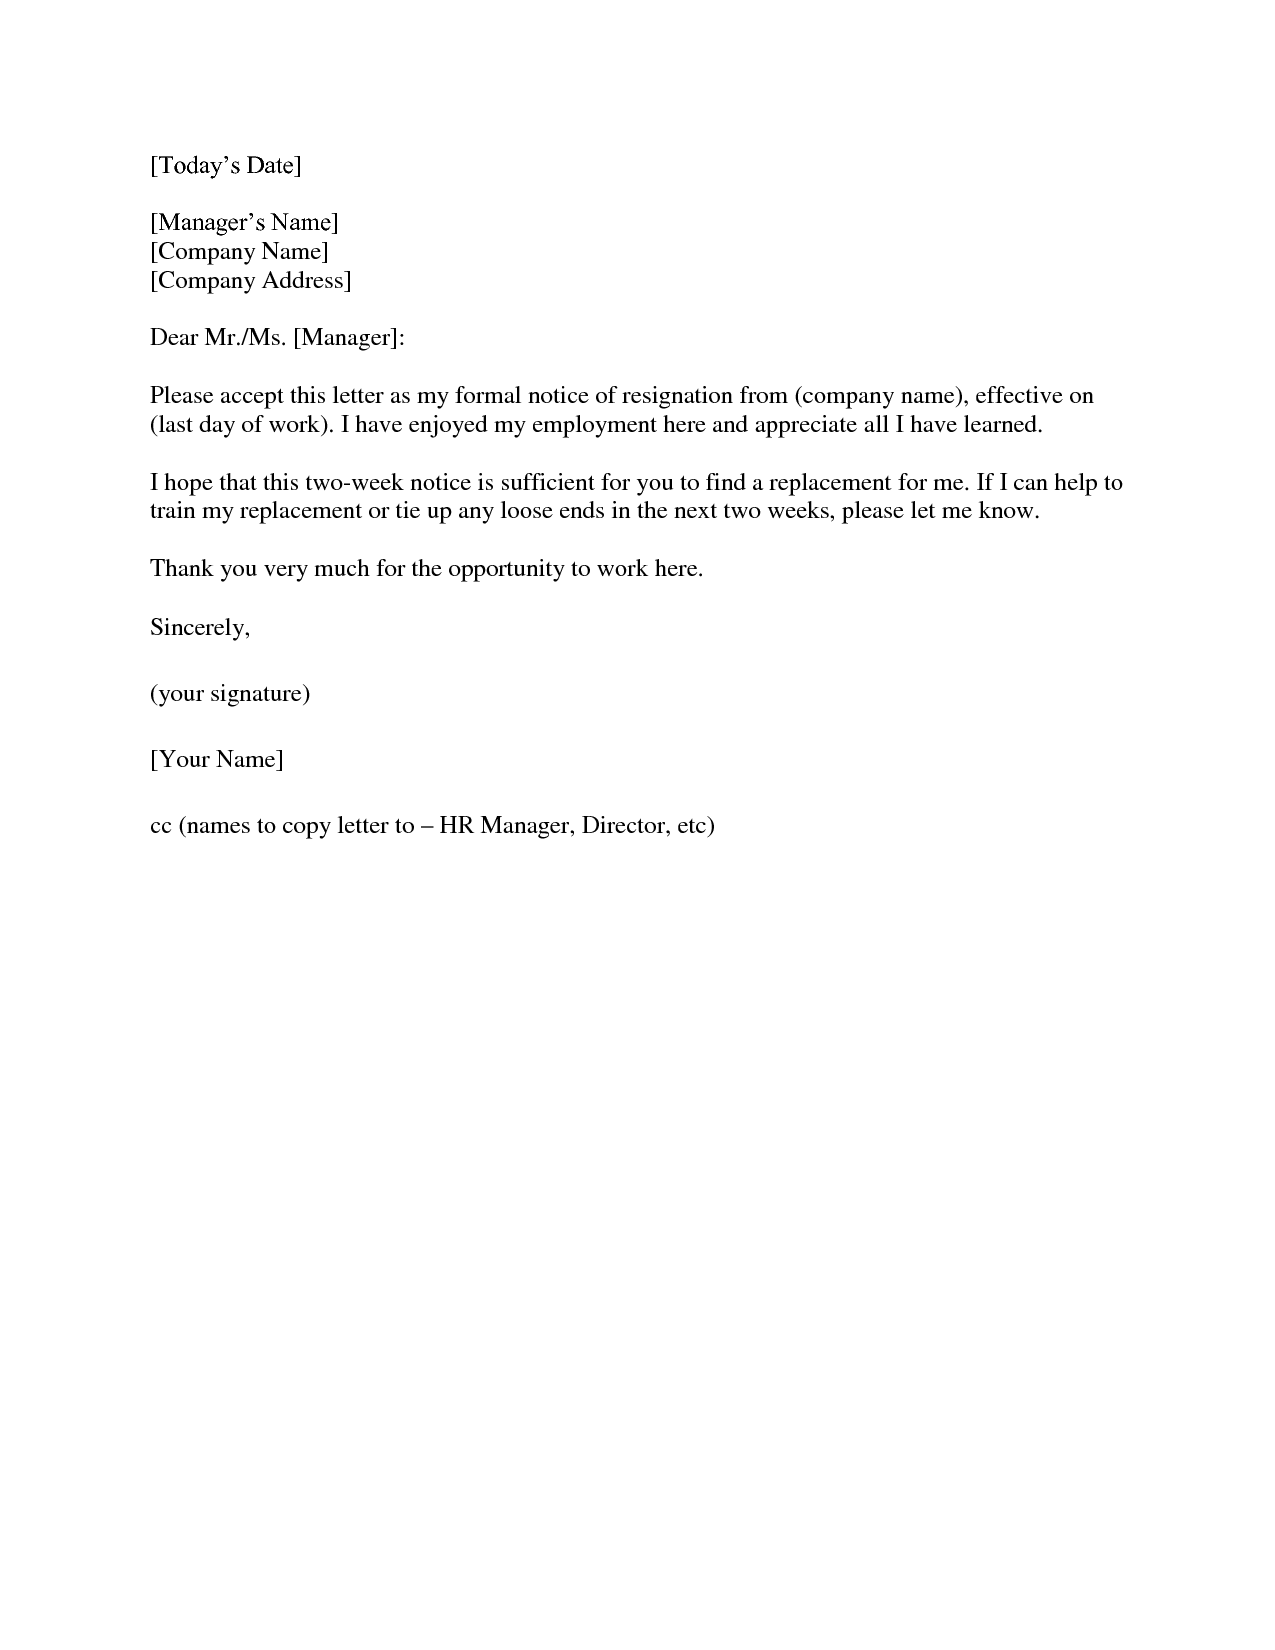 examples of resignation letters 2 weeks notice letter resignation letter 2 week notice 20961